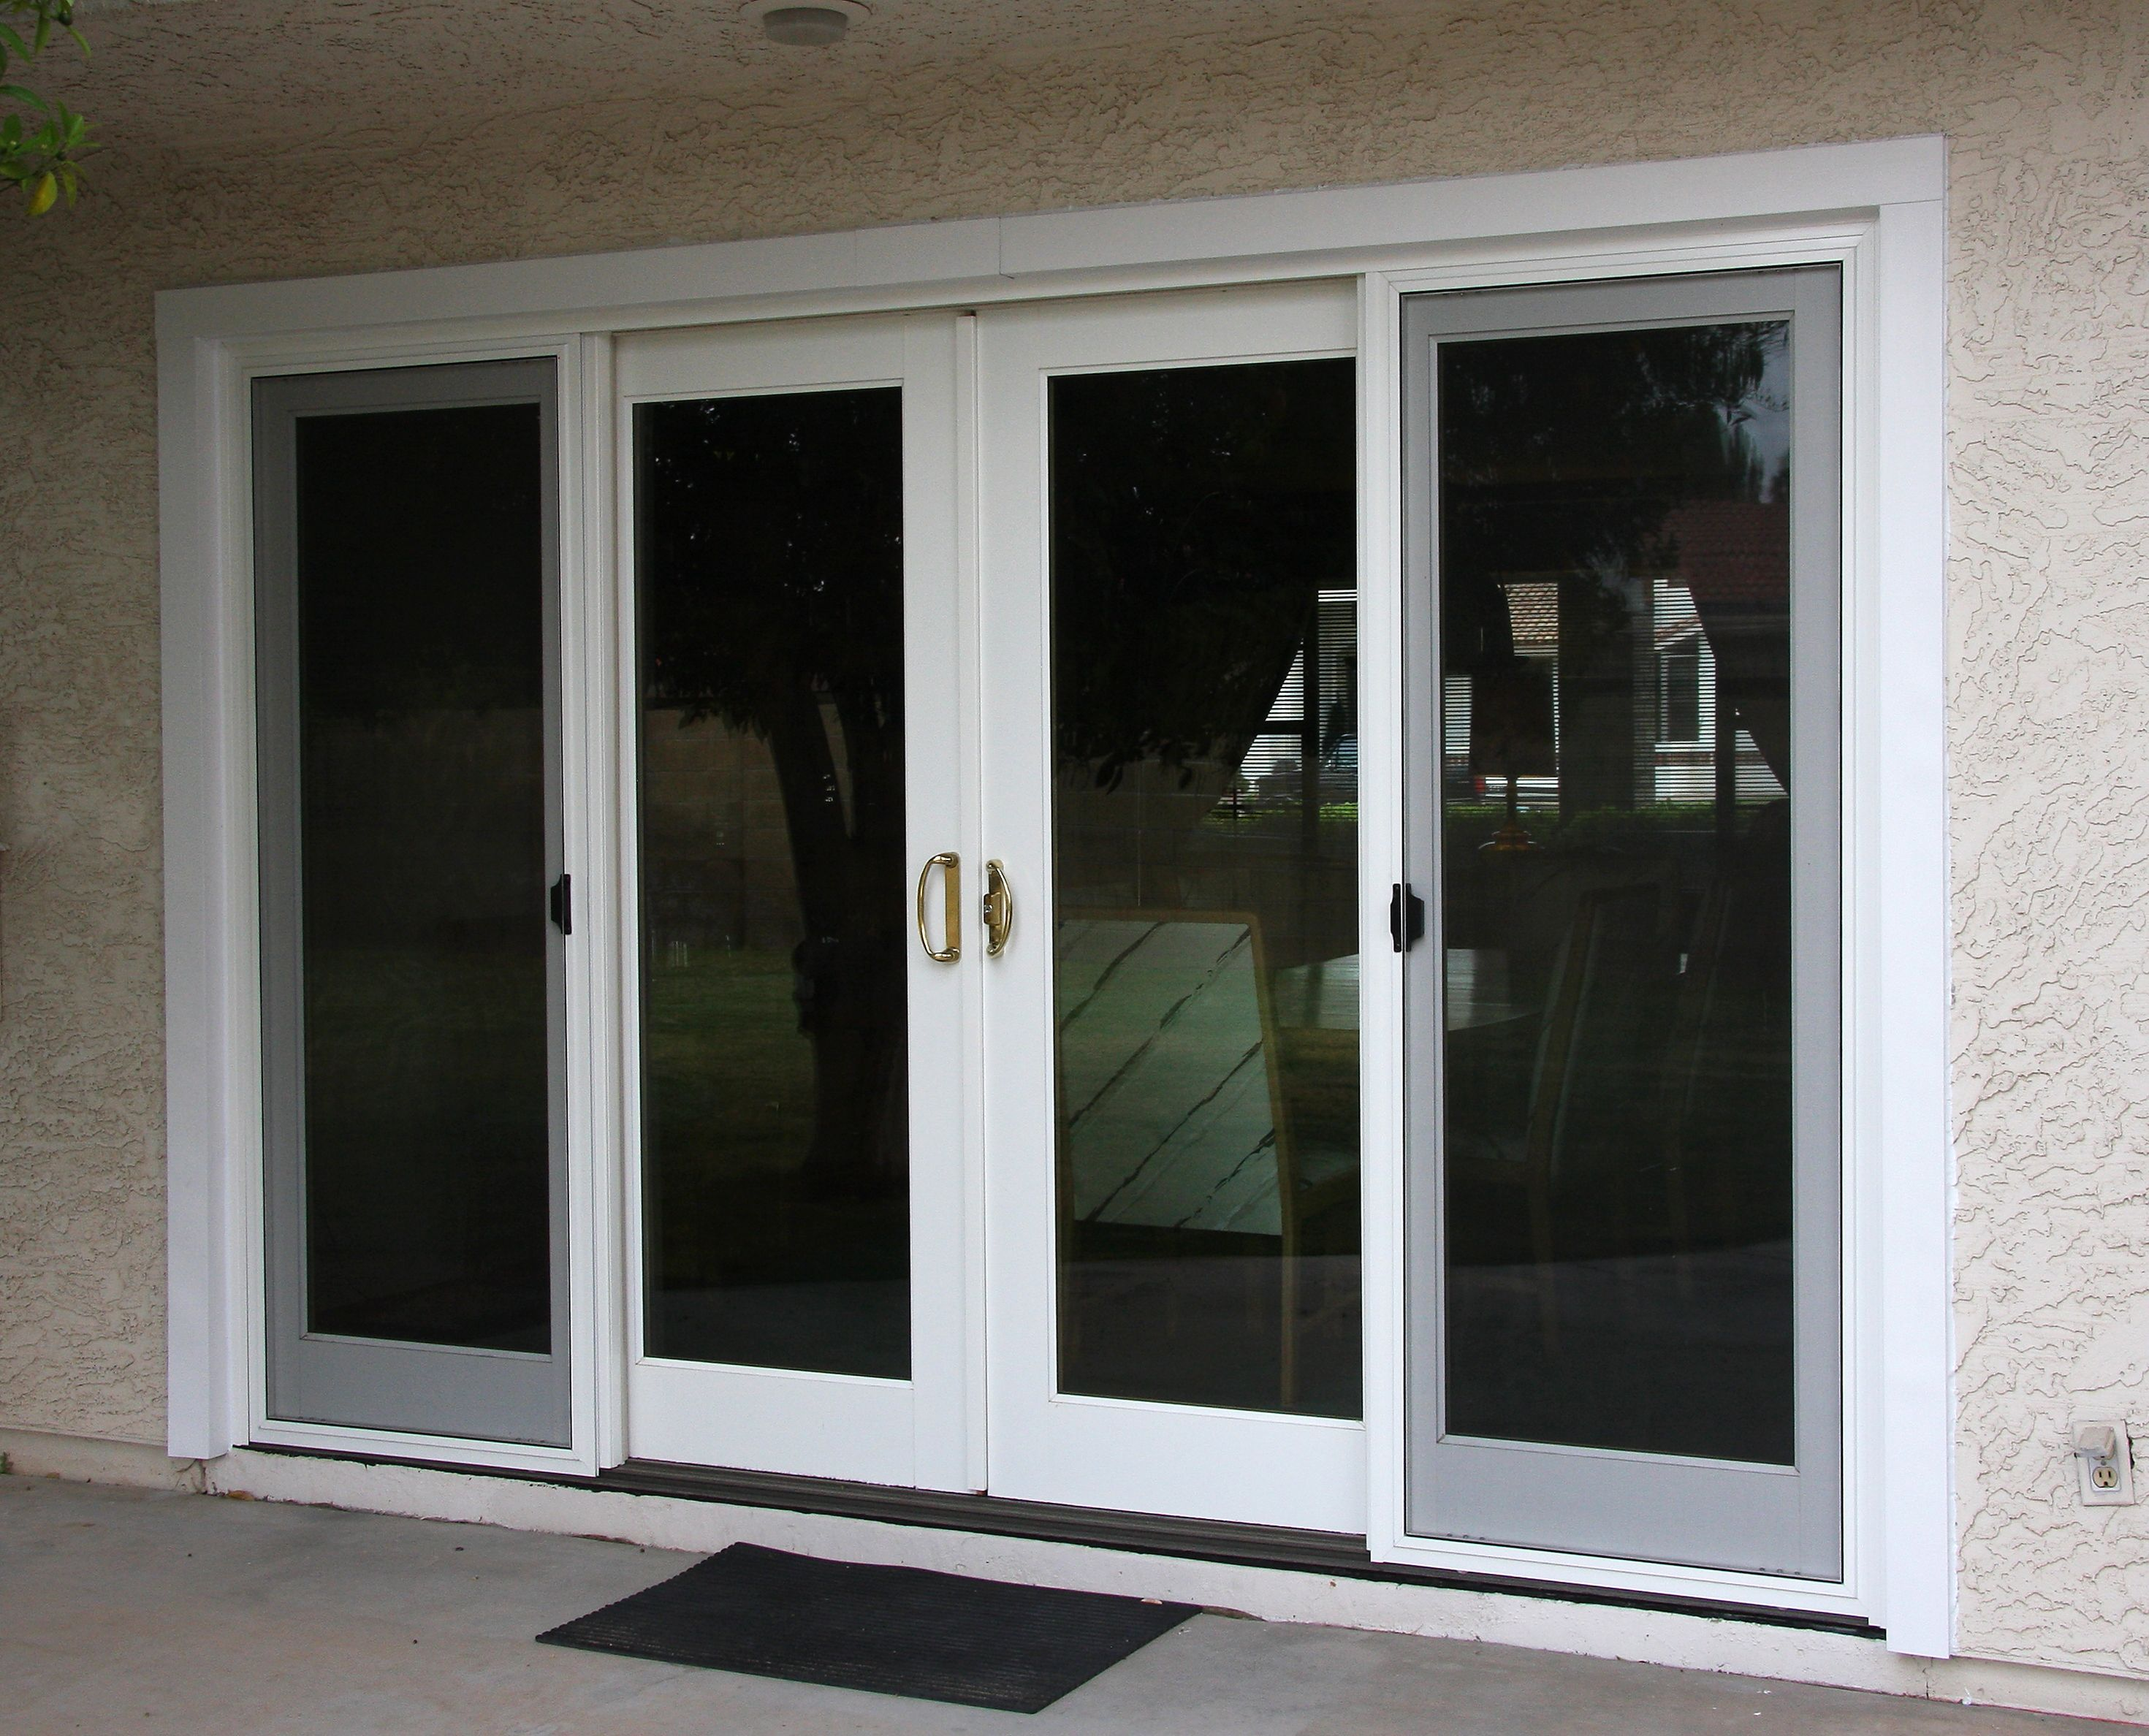 Beautiful Krasiva Visions Oxxo Four Panel French Sliding Door Sliding Glass Doors Patio Patio Doors French Doors